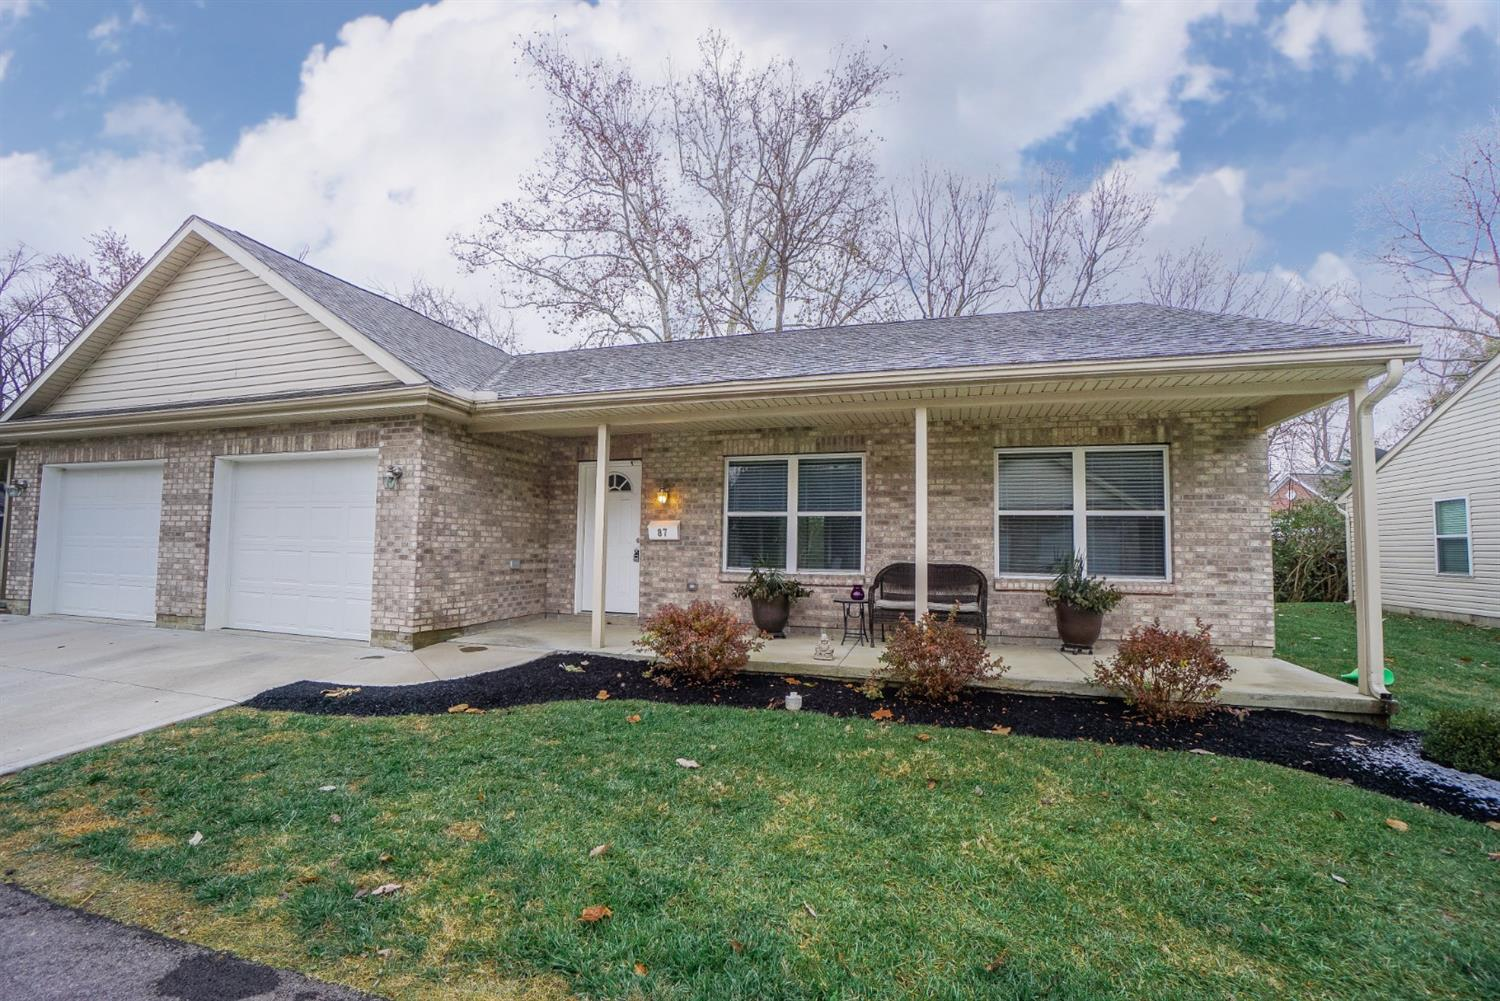 Property for sale at 87 Locust Drive, Springboro,  OH 45066